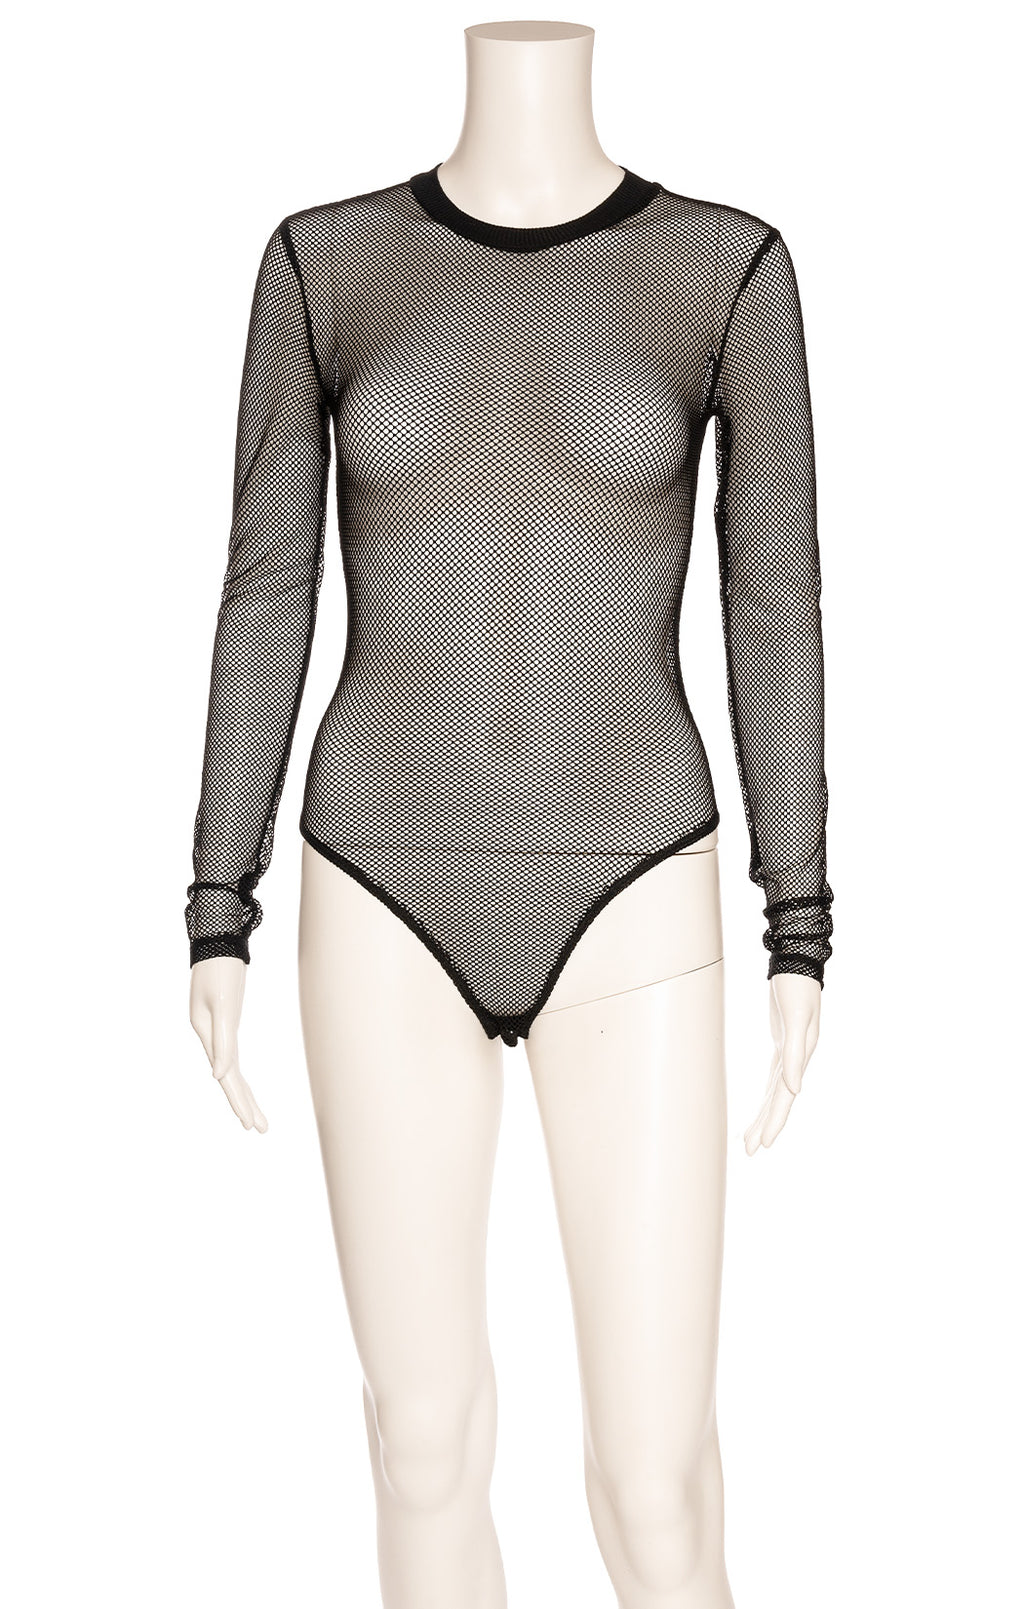 EVRU STUDIOS  Bodysuit  Size: no size tags fits like Small